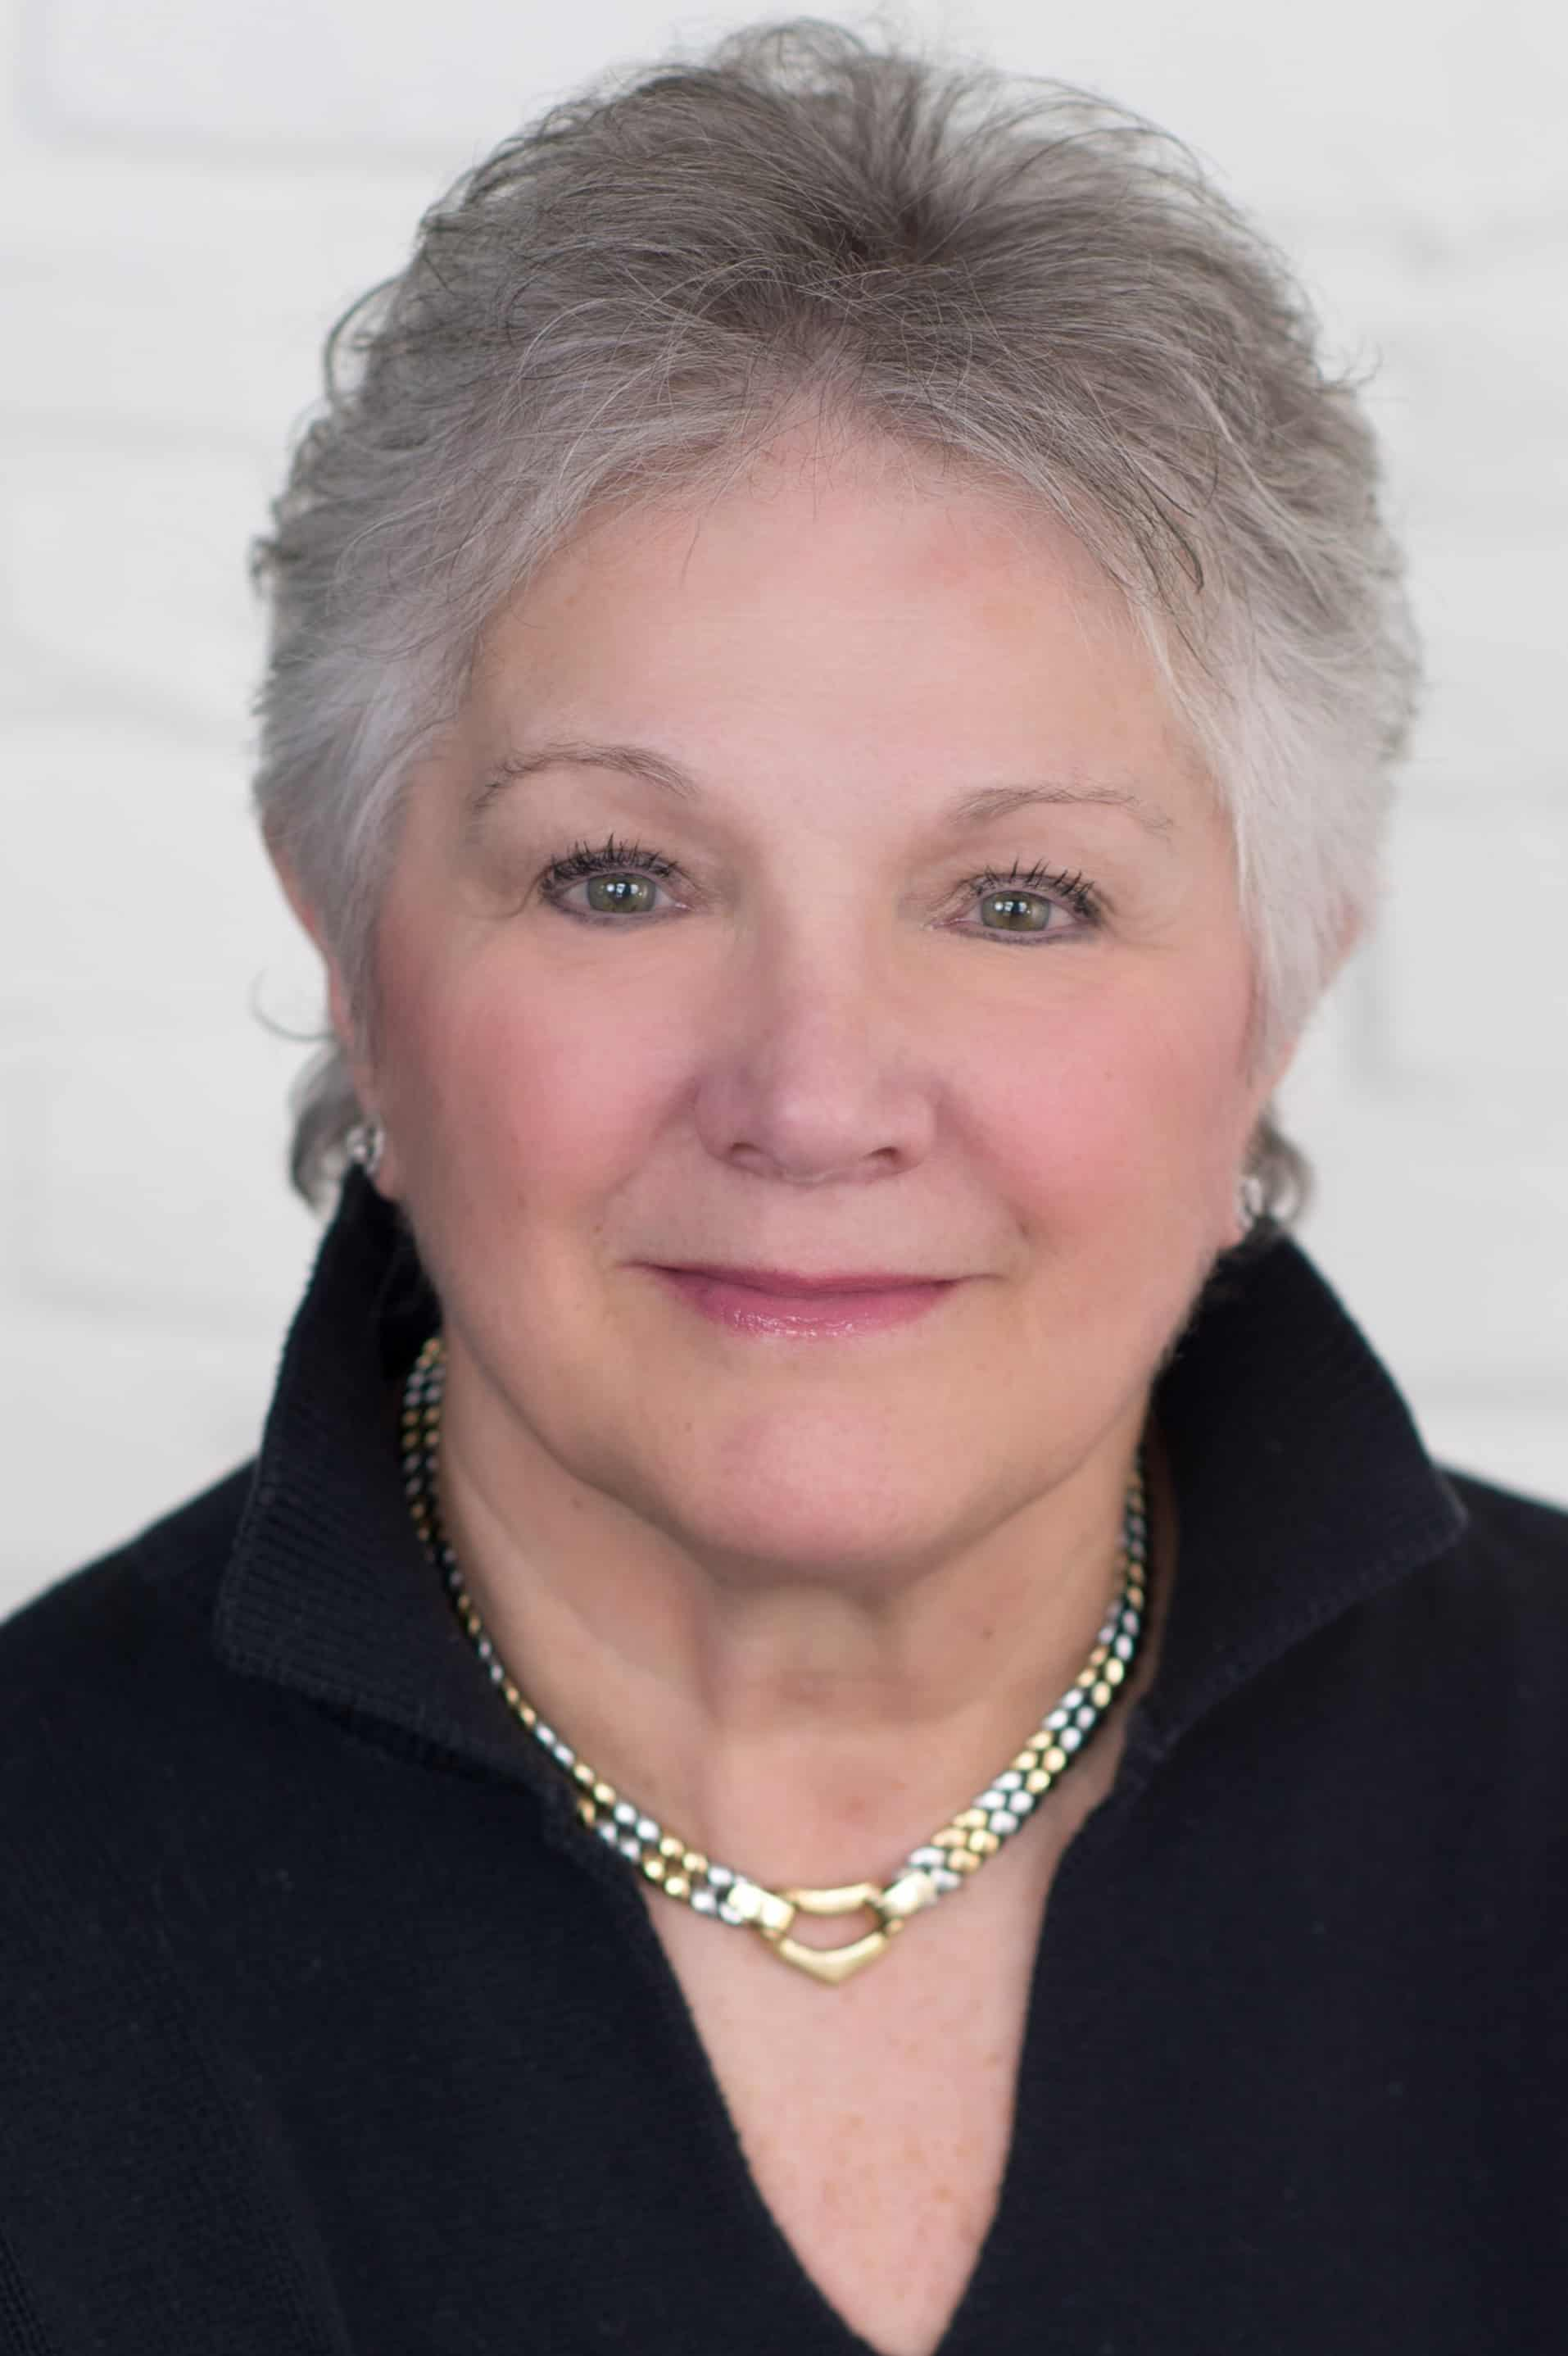 Barbara Greenfeld ABR, CRE, CRS, GREEN, RSPS, SRES